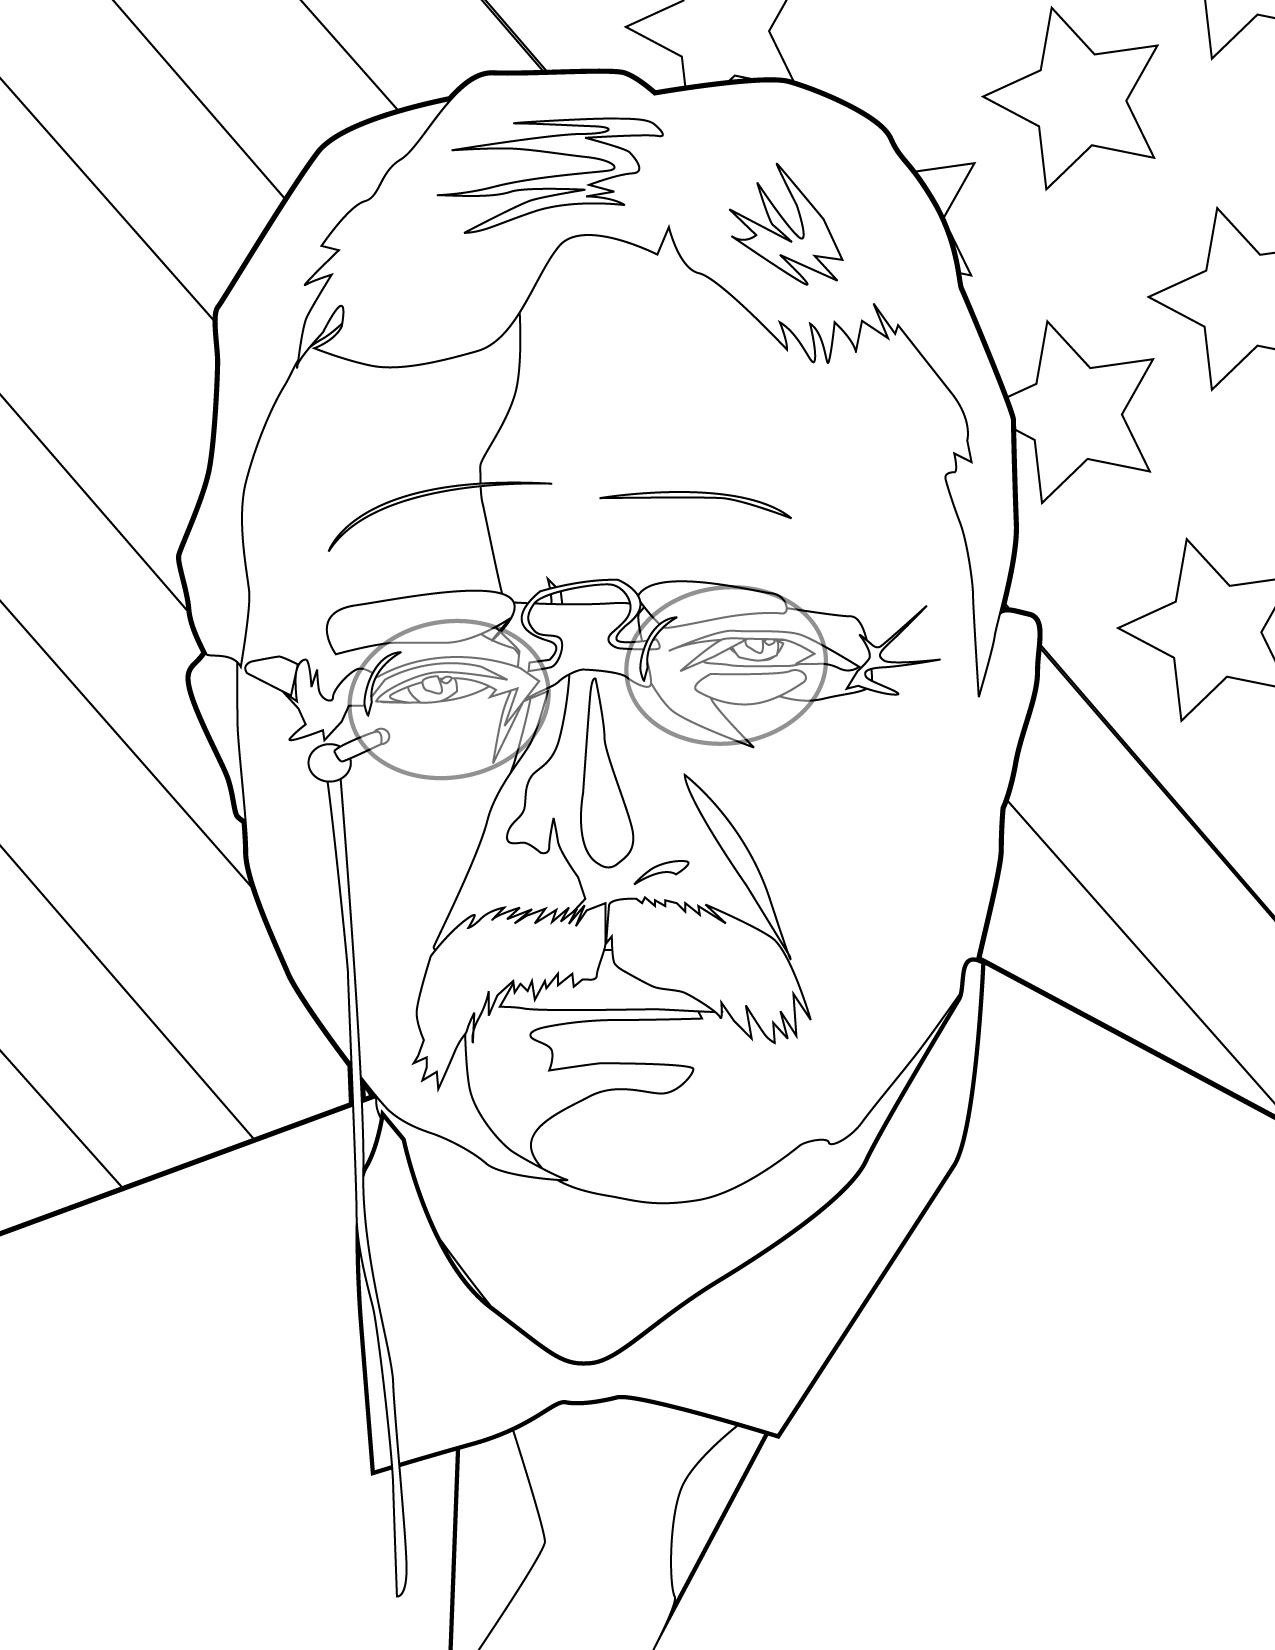 1275x1650 9 Images Of Theodore Roosevelt Coloring Pages